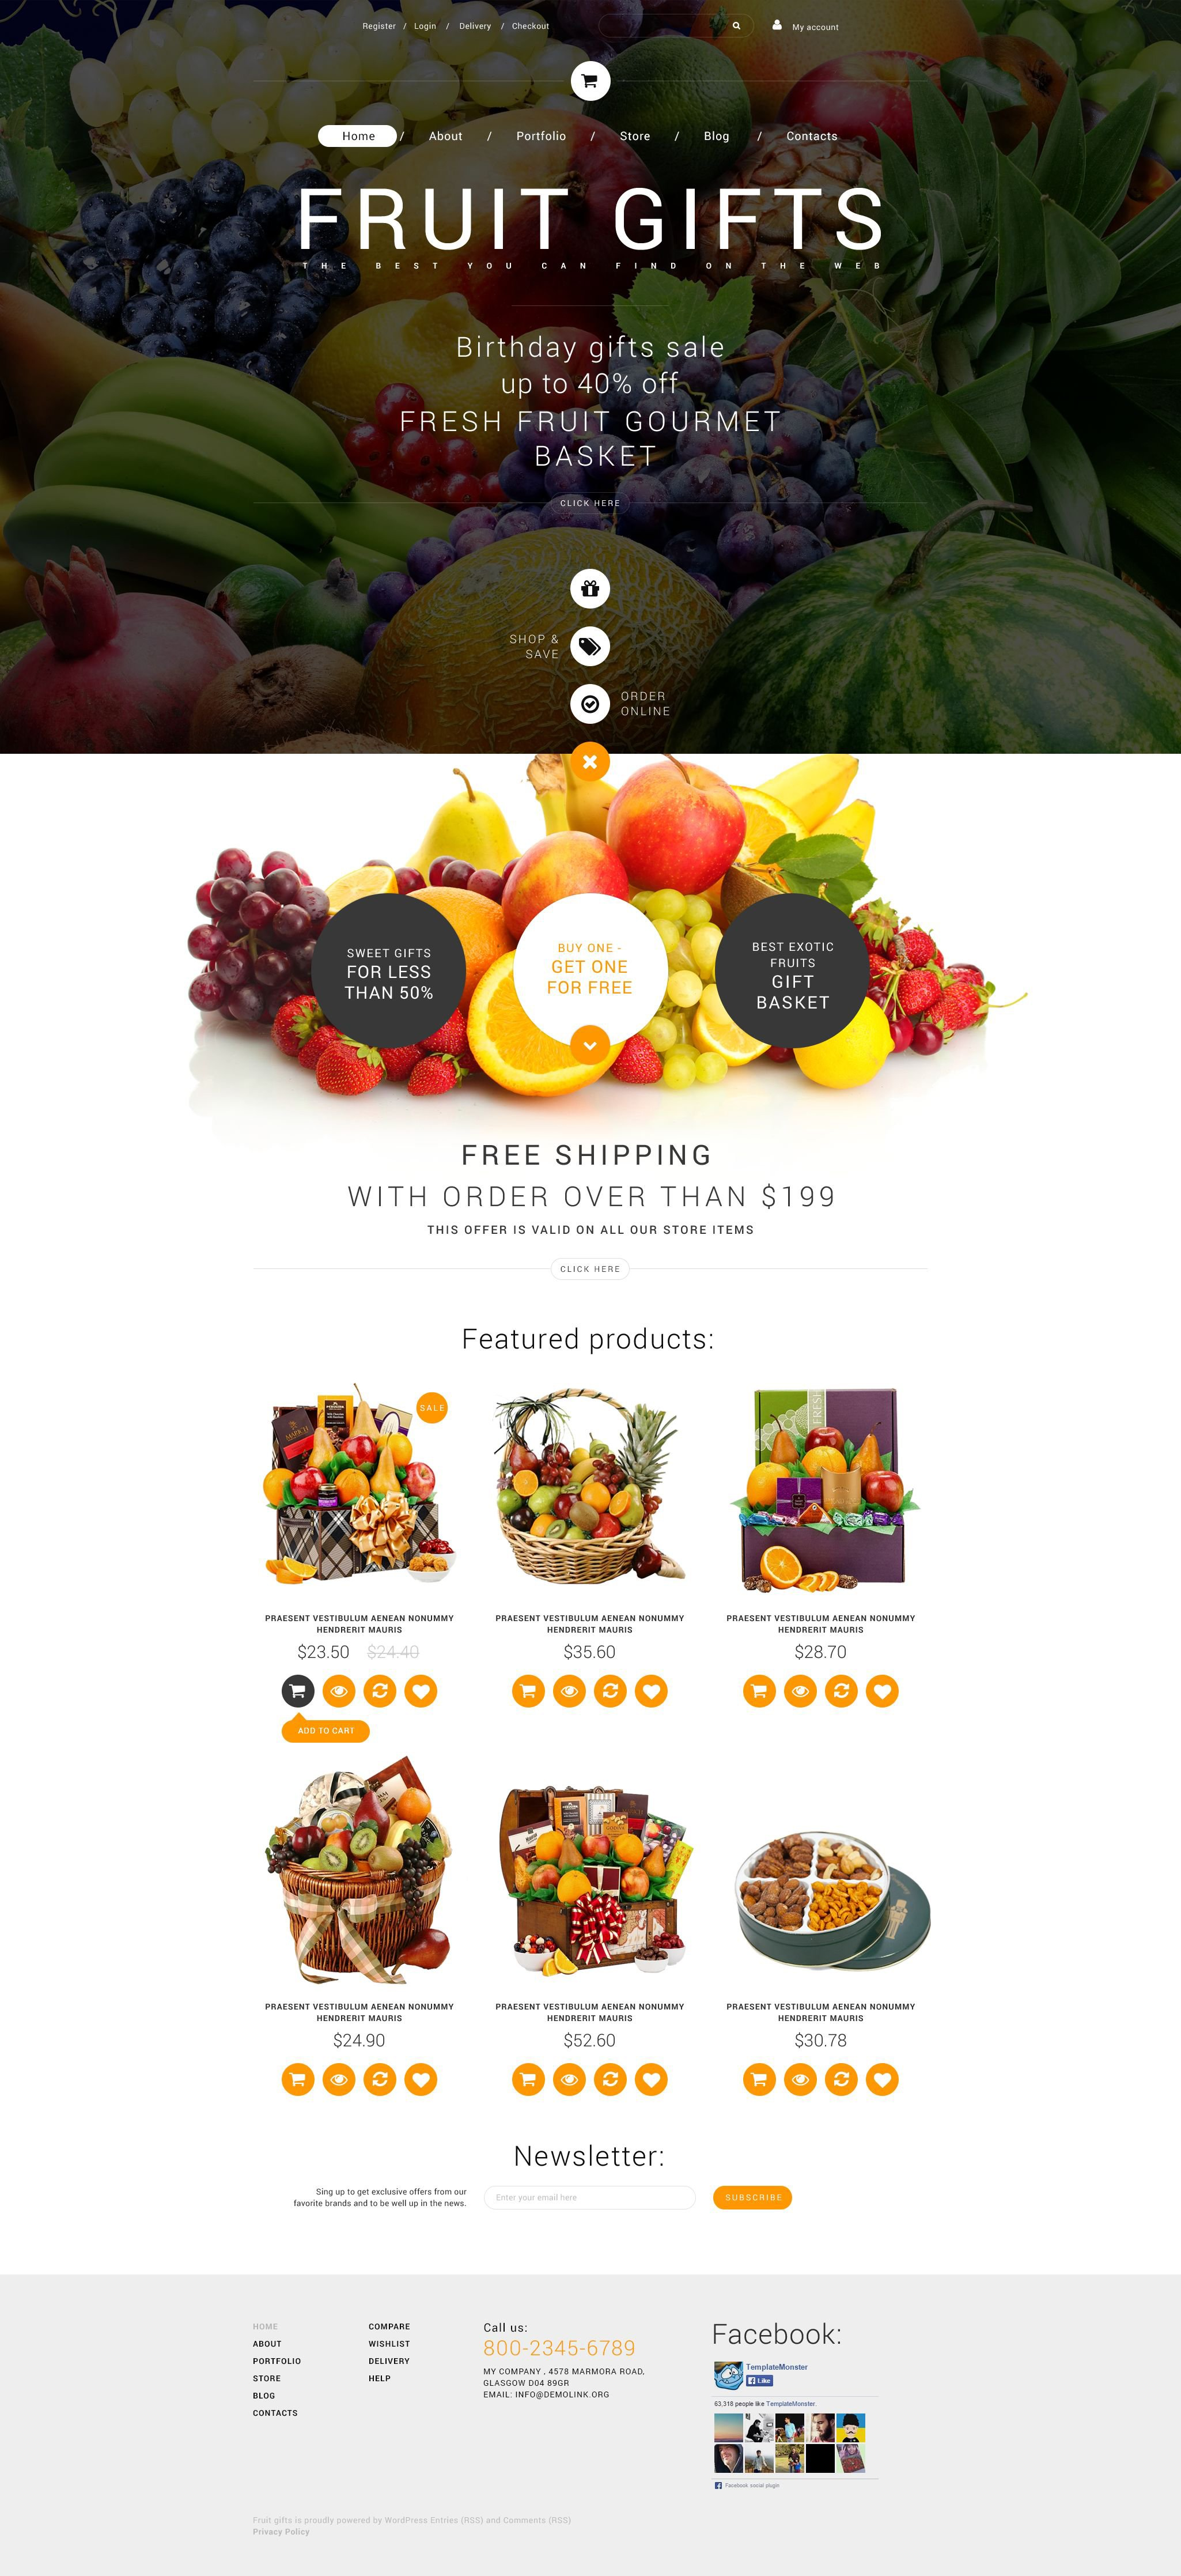 The Fruit Gift Store WooCommerce Design 53783, one of the best WooCommerce themes of its kind (most popular, st. valentine), also known as fruit gift store WooCommerce template, fruits WooCommerce template, dried WooCommerce template, basket WooCommerce template, gift WooCommerce template, chocolate WooCommerce template, strawberries WooCommerce template, gourmet WooCommerce template, chocolate-dipped WooCommerce template, citrus WooCommerce template, delicacy and related with fruit gift store, fruits, dried, basket, gift, chocolate, strawberries, gourmet, chocolate-dipped, citrus, delicacy, etc.